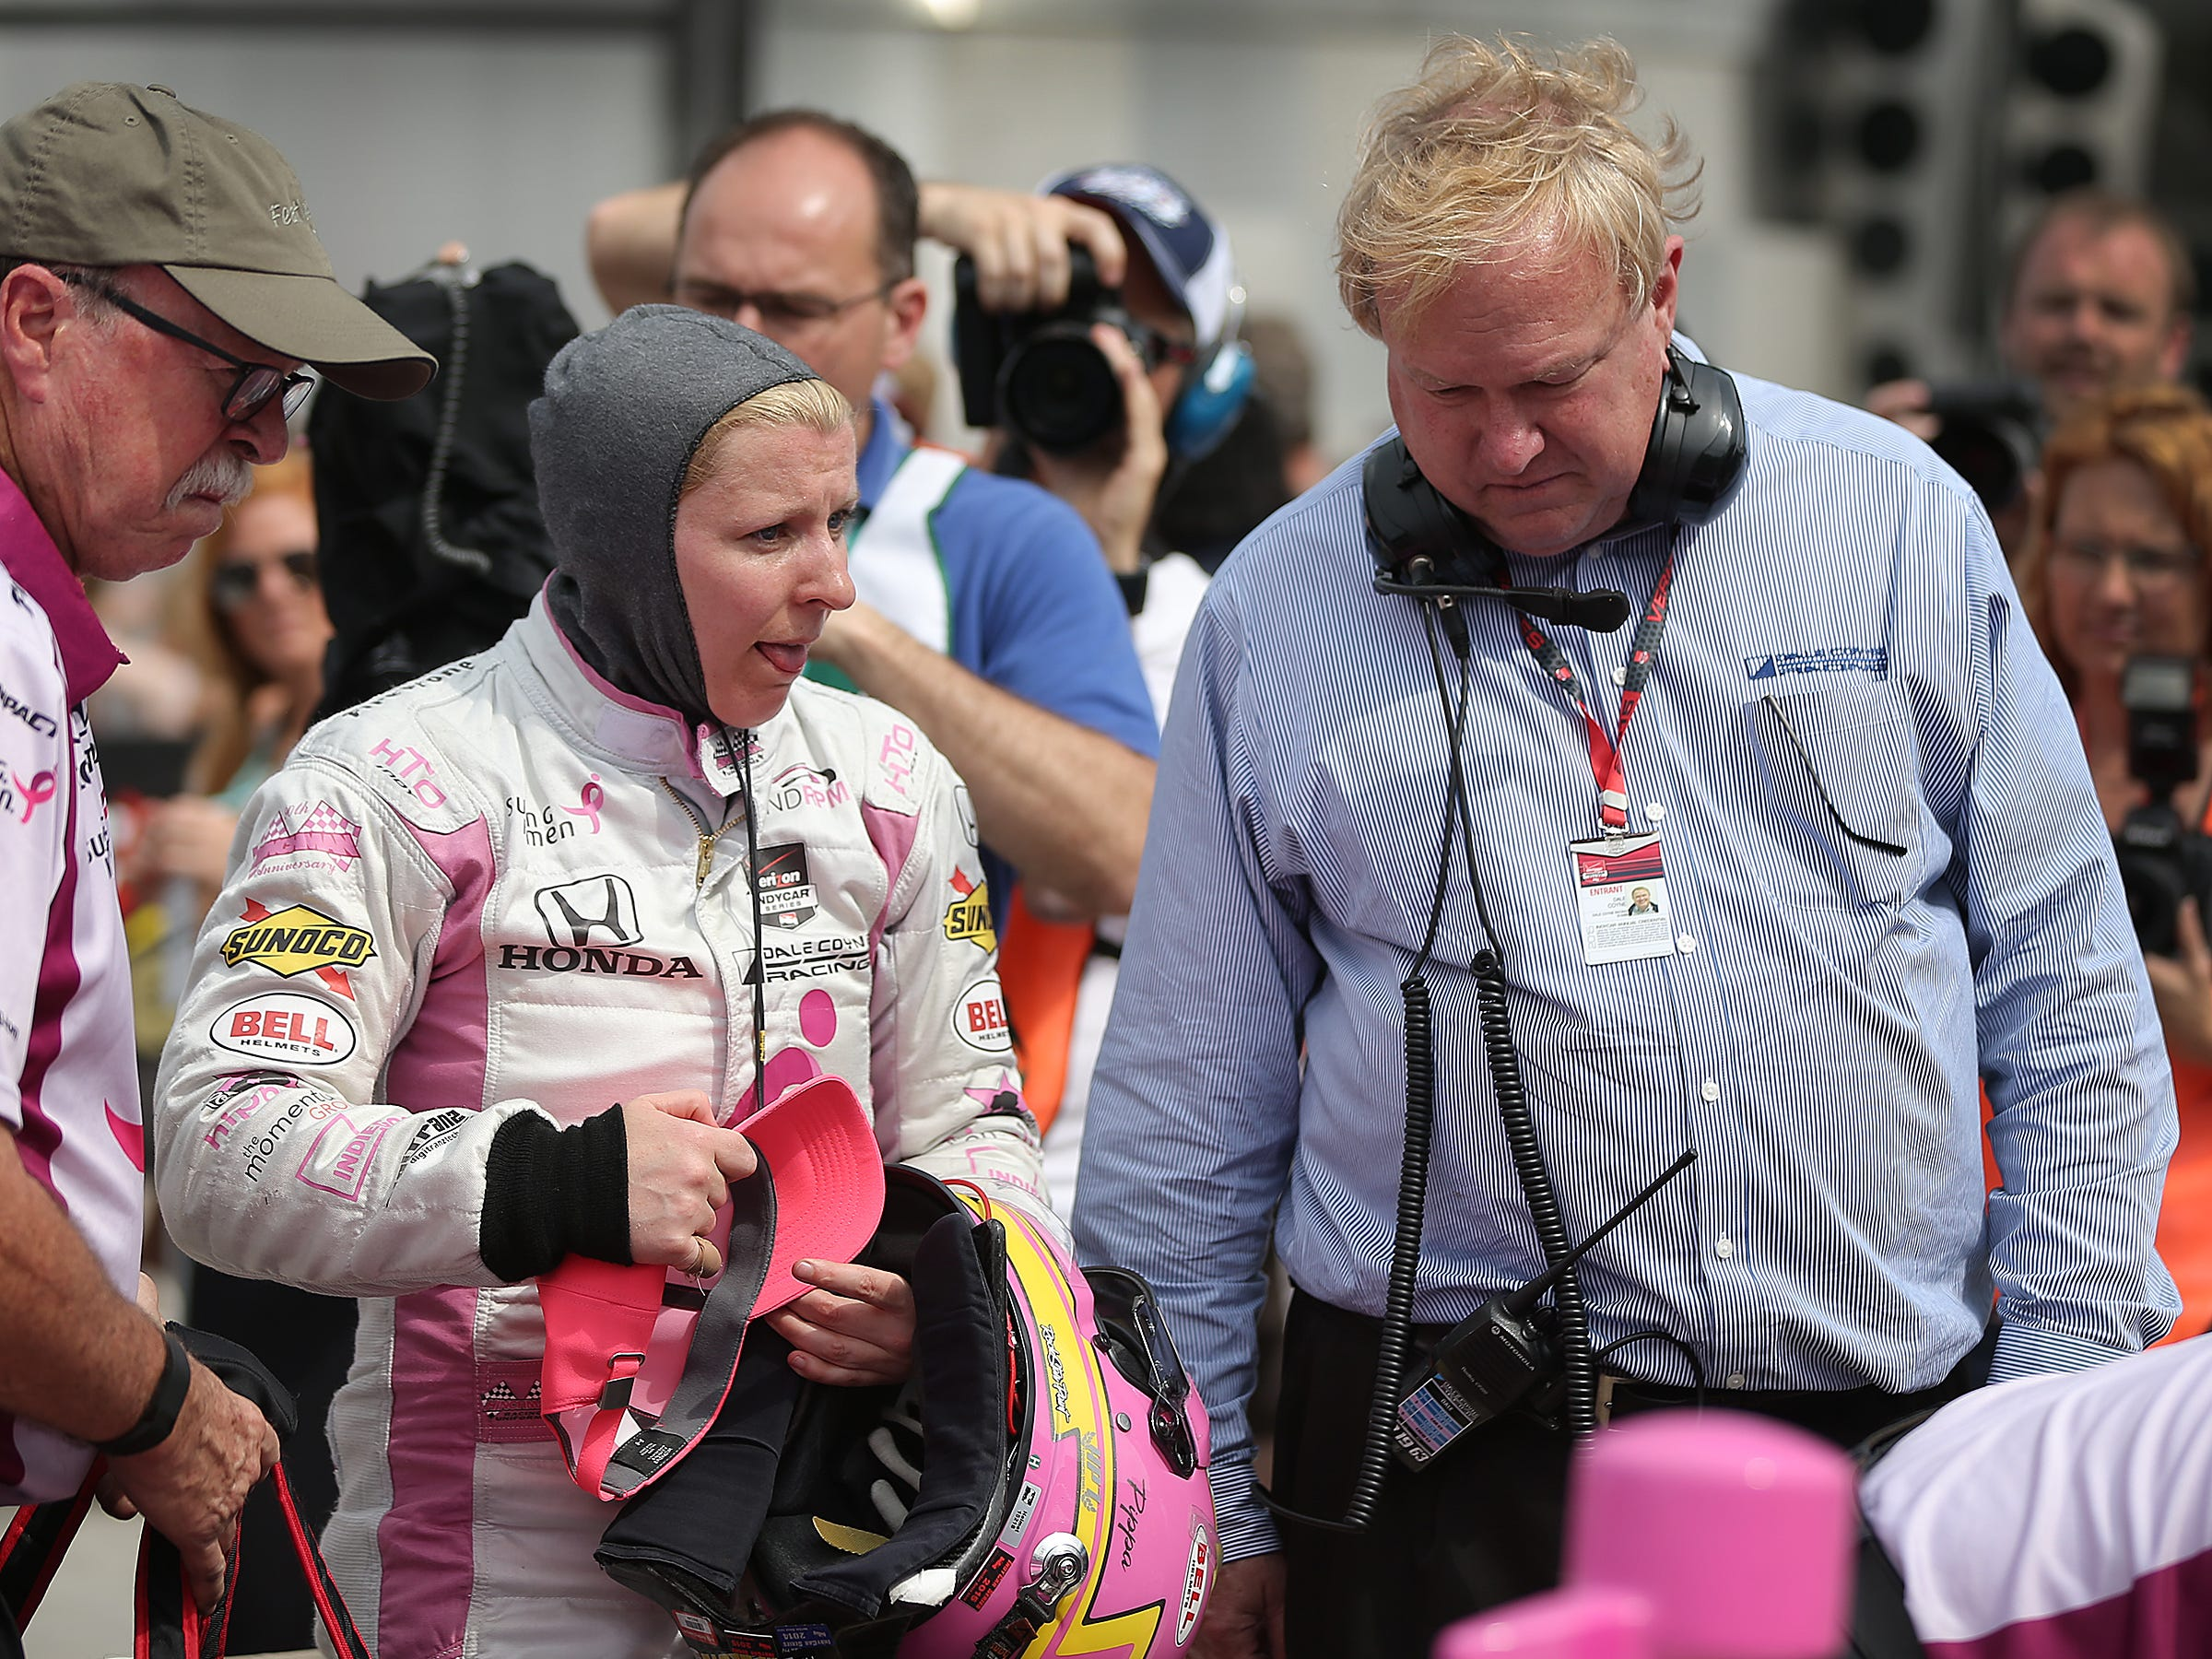 Dale Coyne RacingÕs Pippa Mann (63) talks with team over Dale Coyne following her qualifications attempts for the 99th Indianapolis 500 Sunday, May 17, 2015, morning at the Indianapolis Motor Speedway.